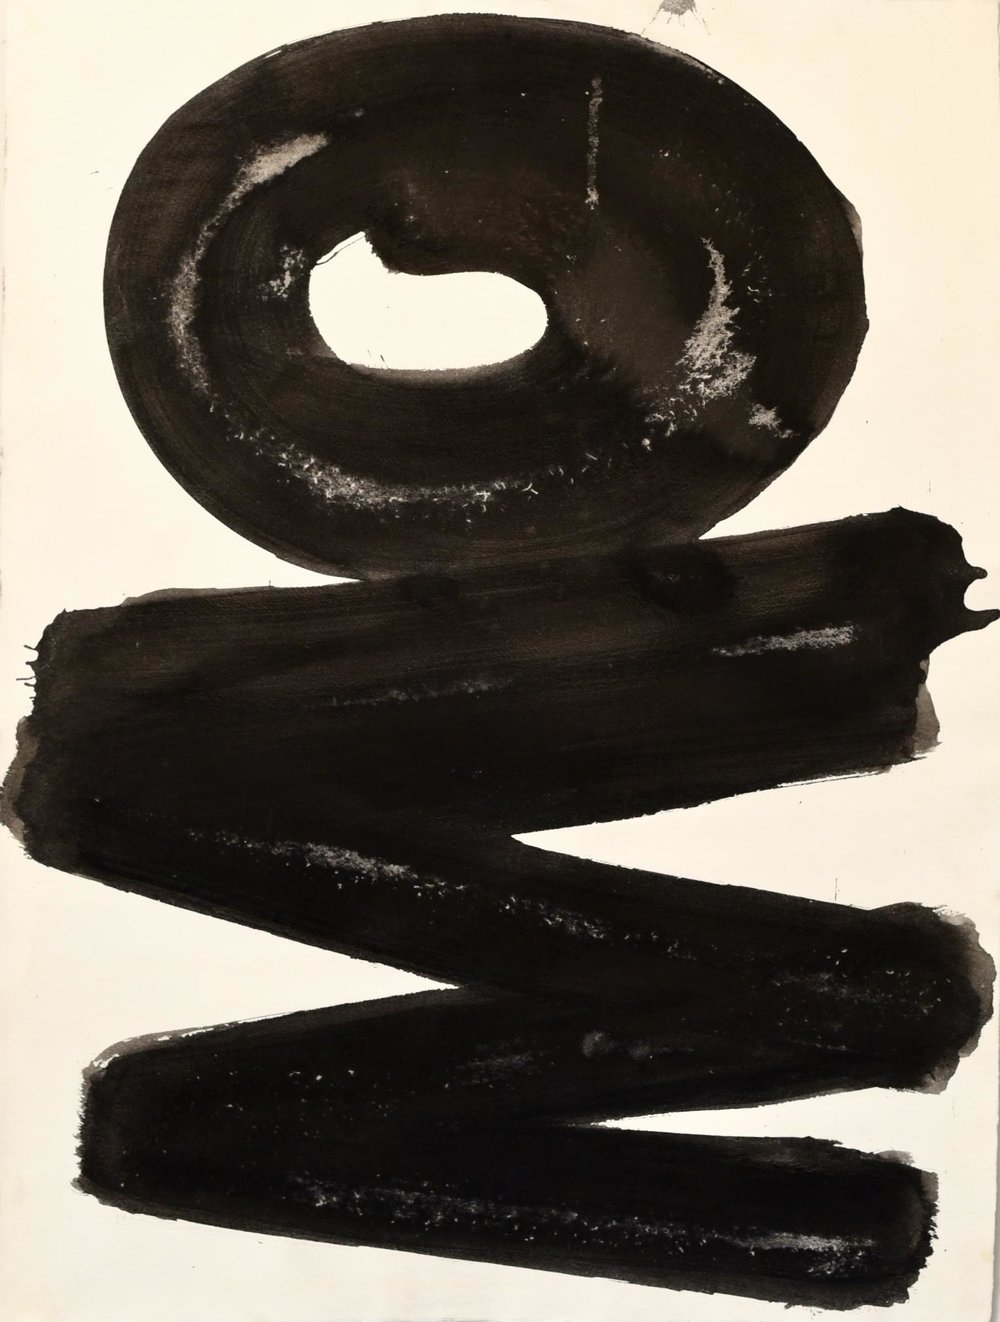 Slivka  Untitled #5, early 70s,  ink on paper, 31 x 23 in, $3000